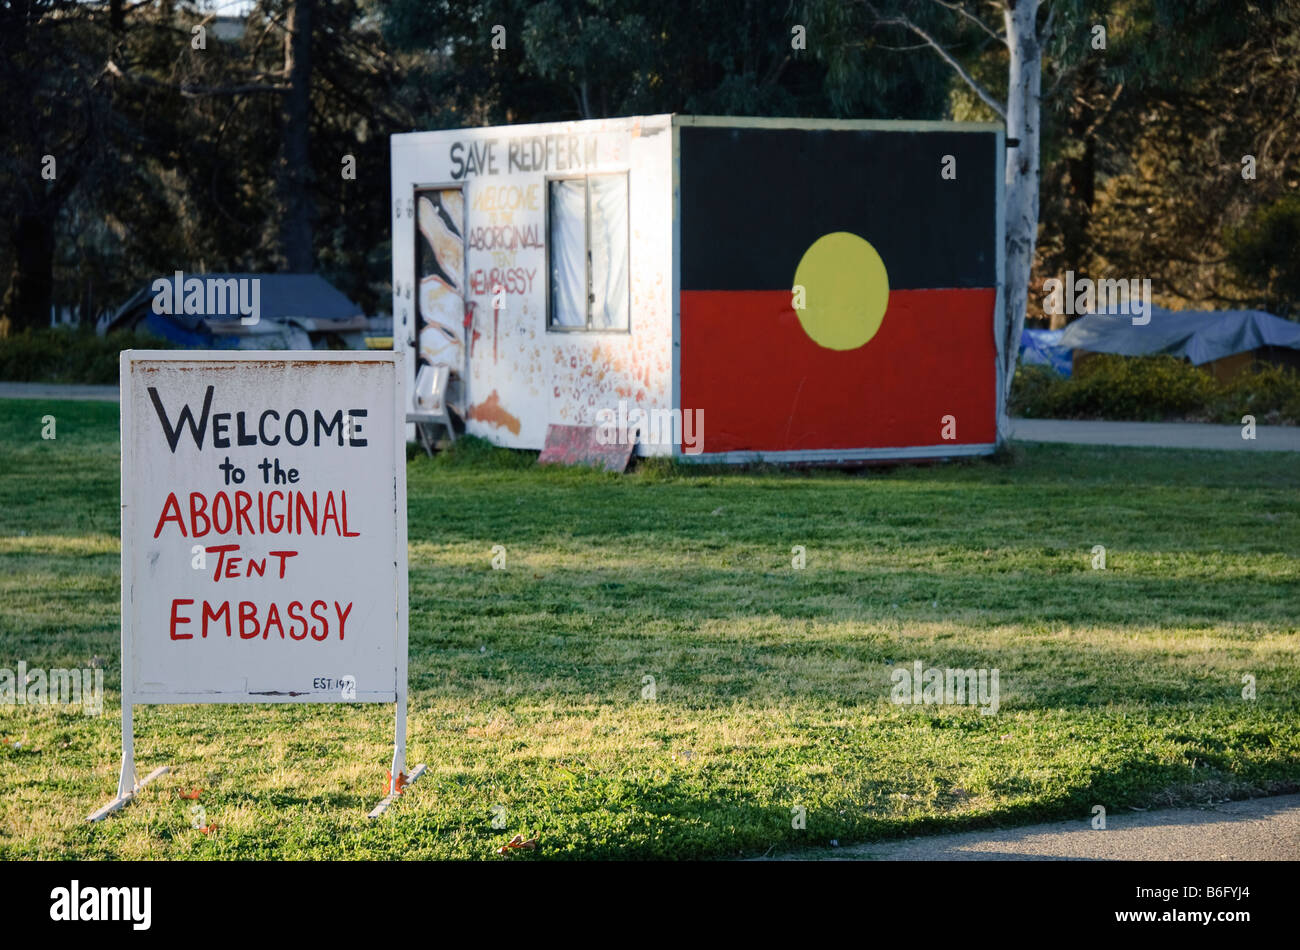 Office of the Aboriginal Tent Embassy Canberra Australia on the lawns of Old Parliament House with a welcome sign. Australian protest; controversy & Office of the Aboriginal Tent Embassy Canberra Australia on the ...